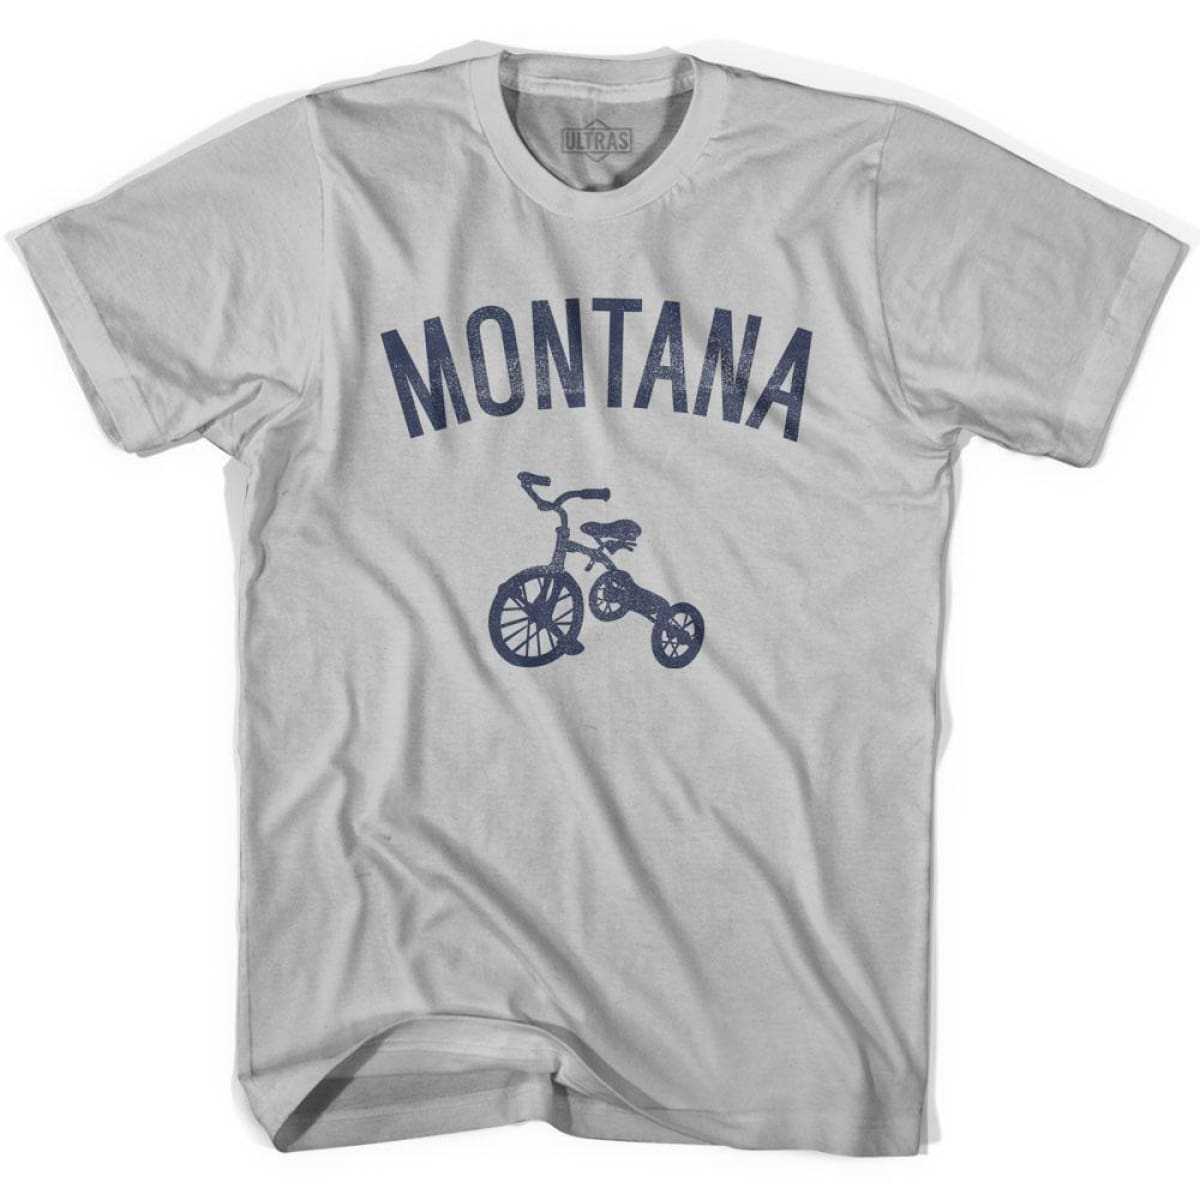 Montana State Tricycle Adult Cotton T-shirt - Cool Grey / Adult Small - Tricycle State